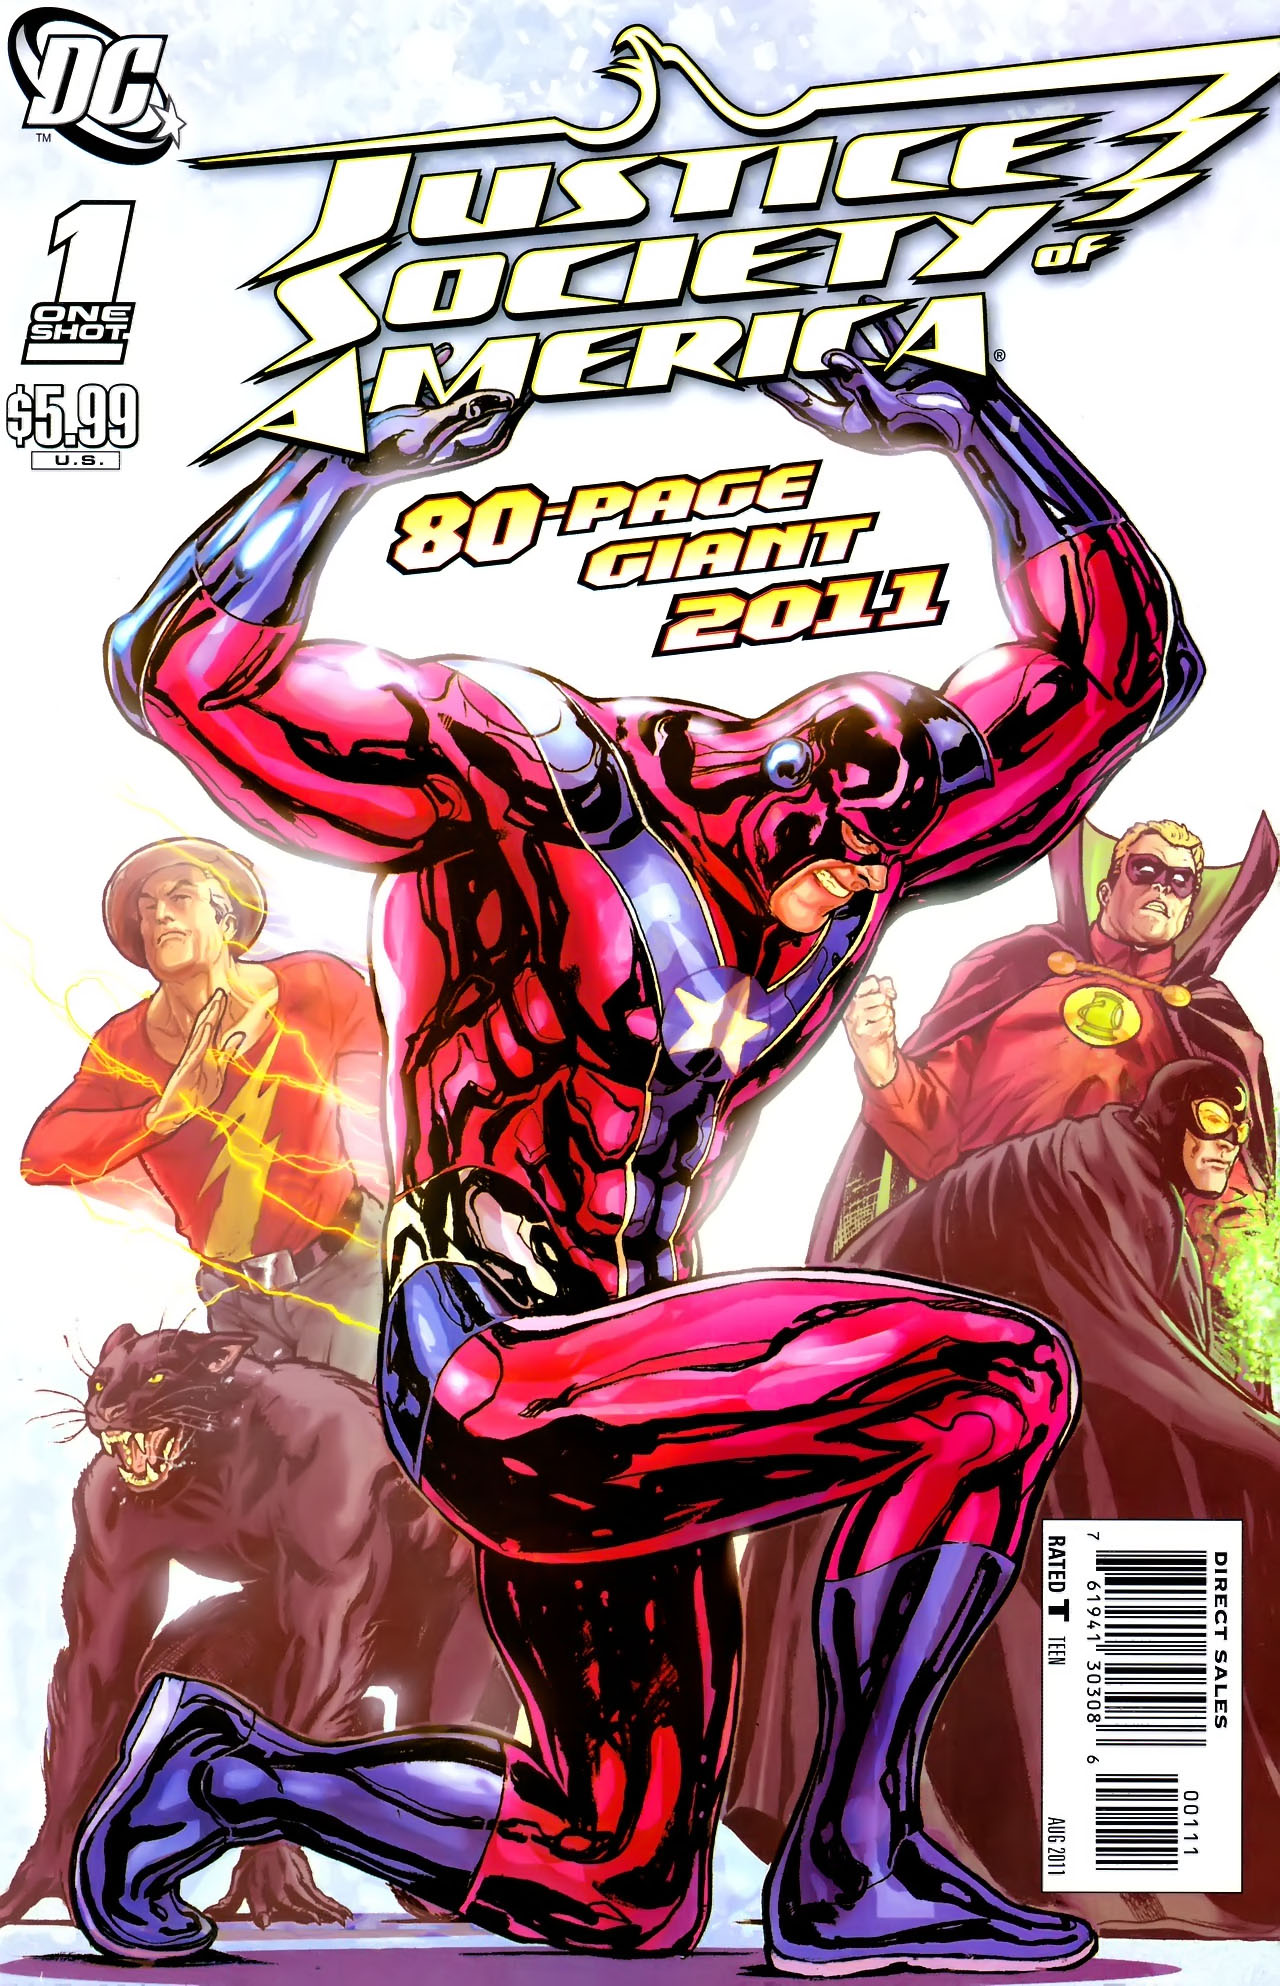 Read online JSA 80-Page Giant 2011 comic -  Issue # Full - 1